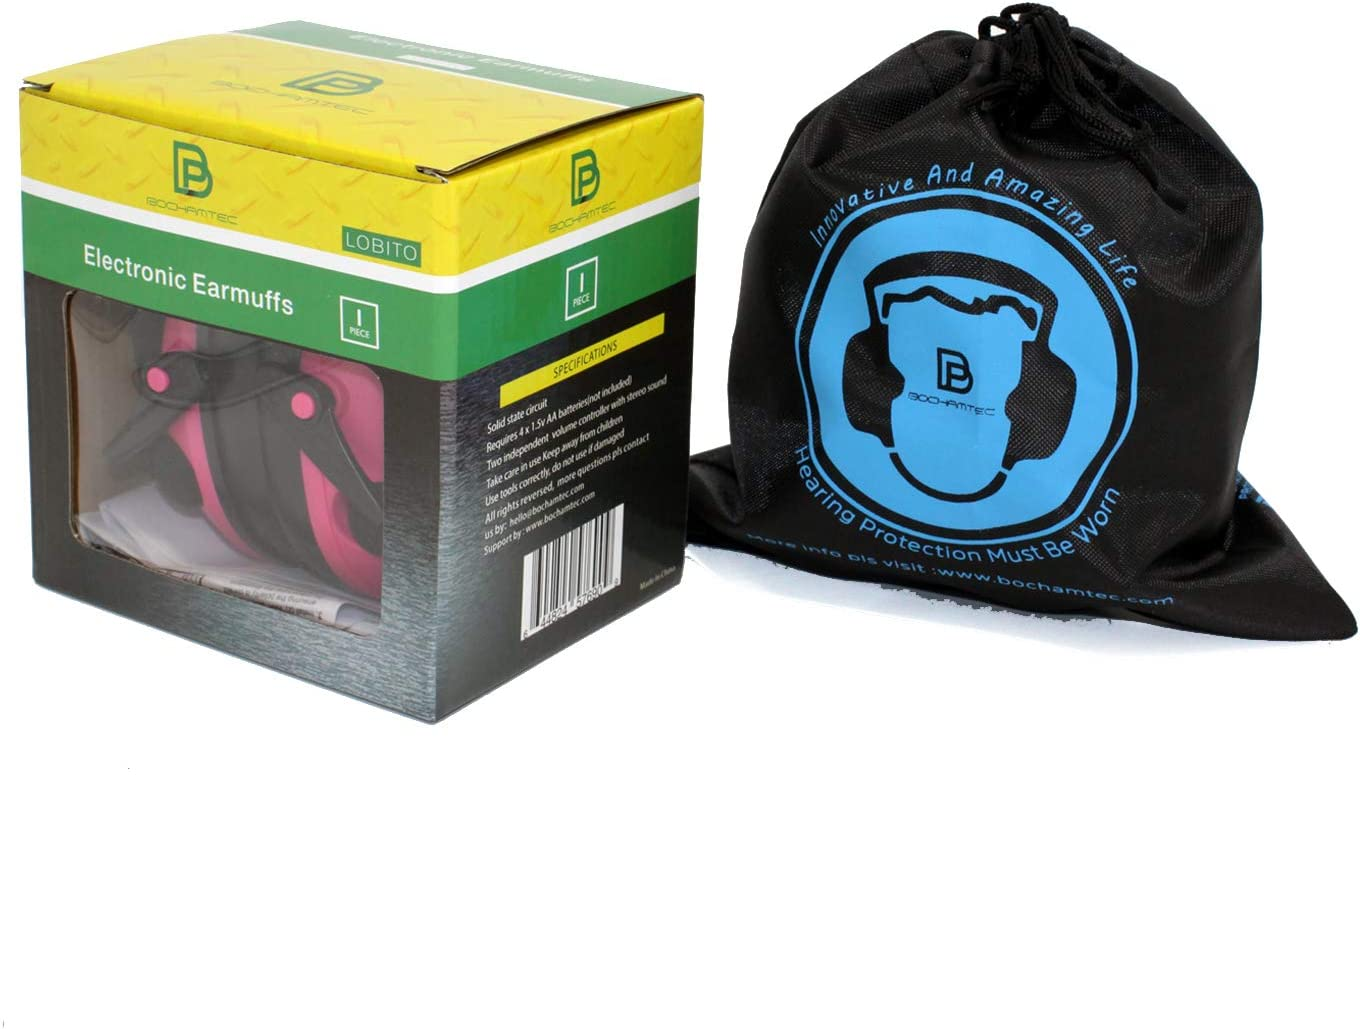 Bochamtec LOBITO Electronic Shooting Earmuff Noise Reduction Sound Amplification Electronic Safety Ear Muffs With a Carrying bag